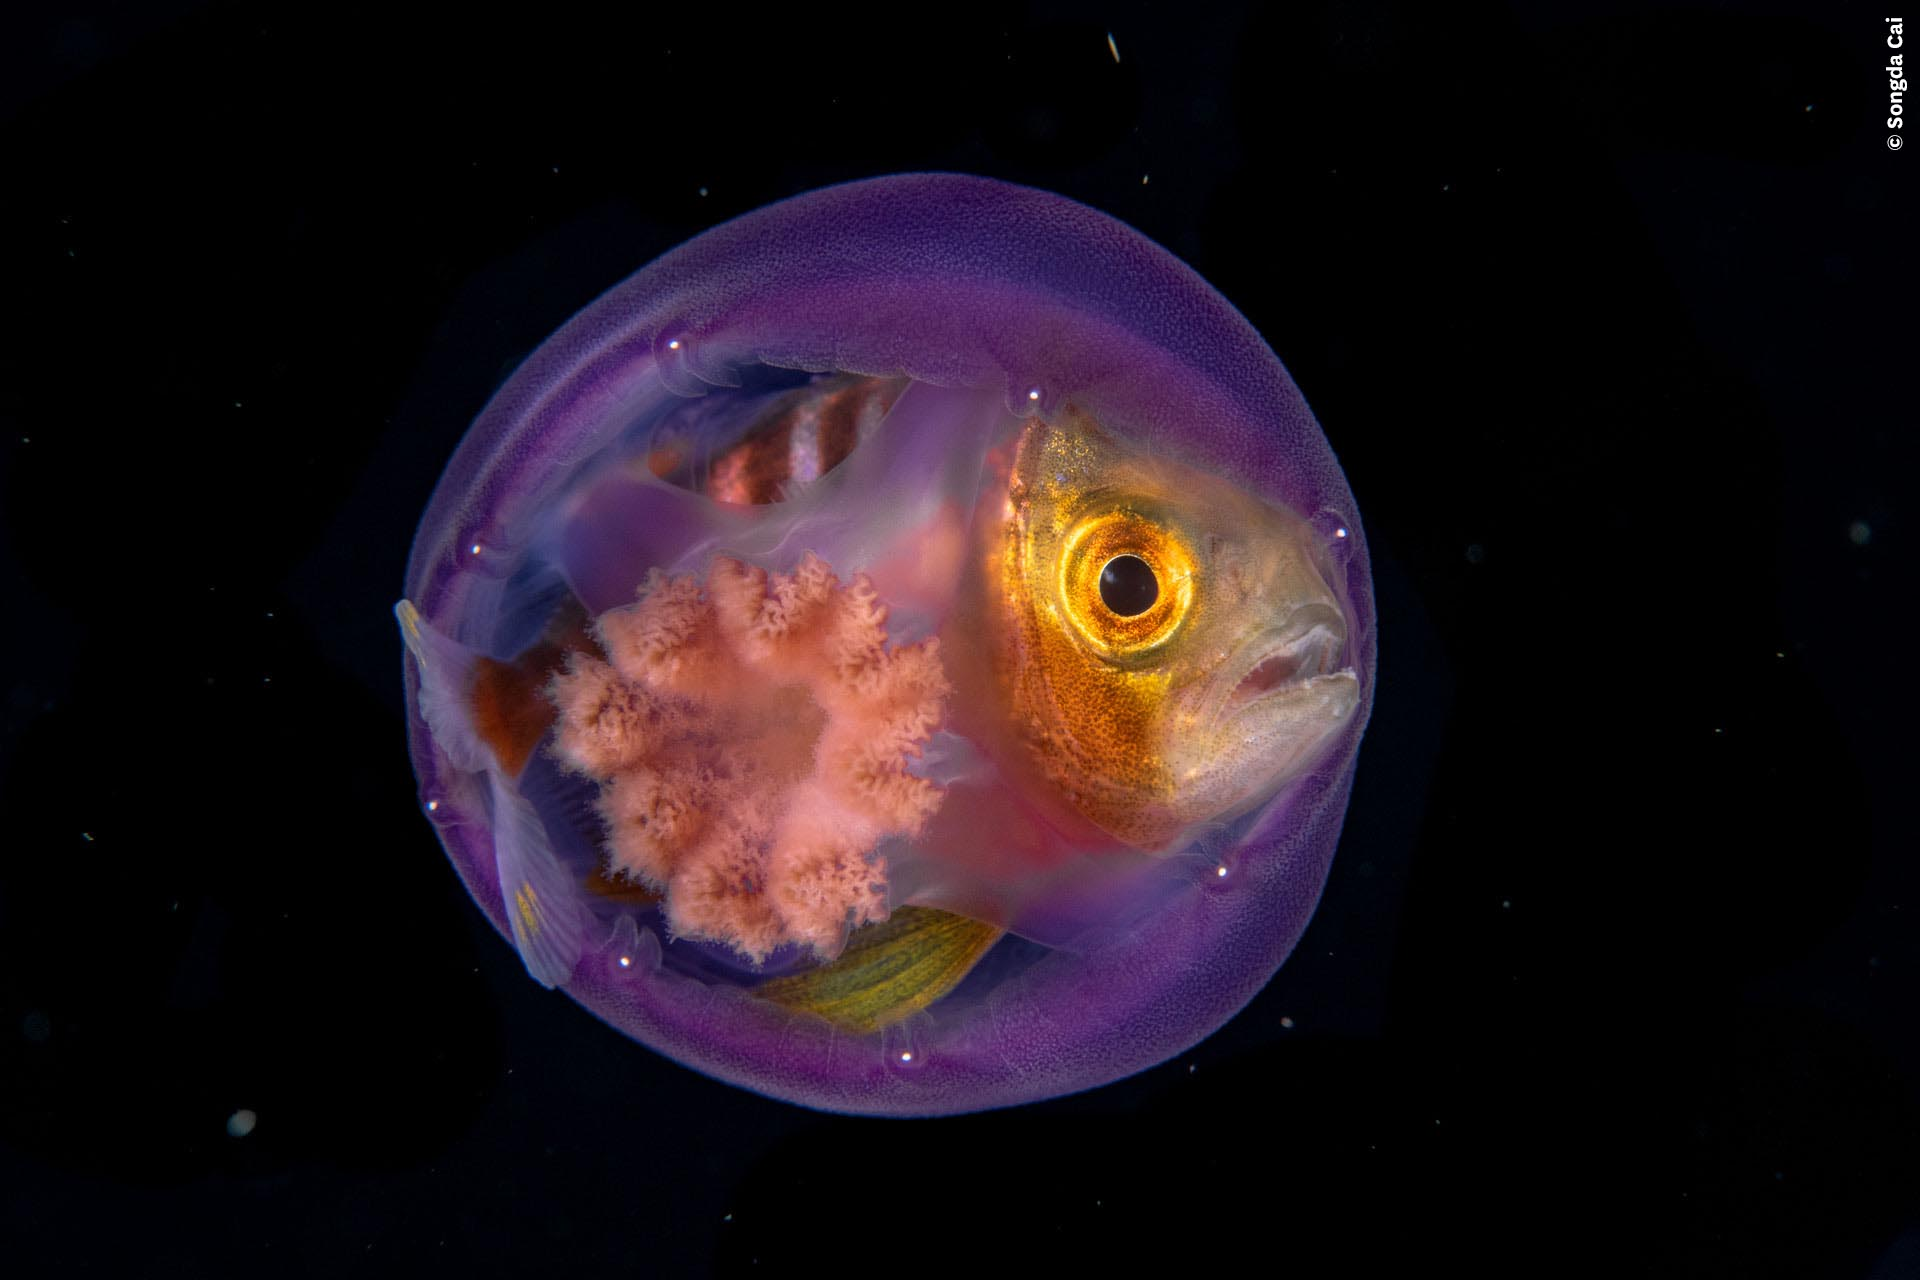 A fish hiding in a jellyfish